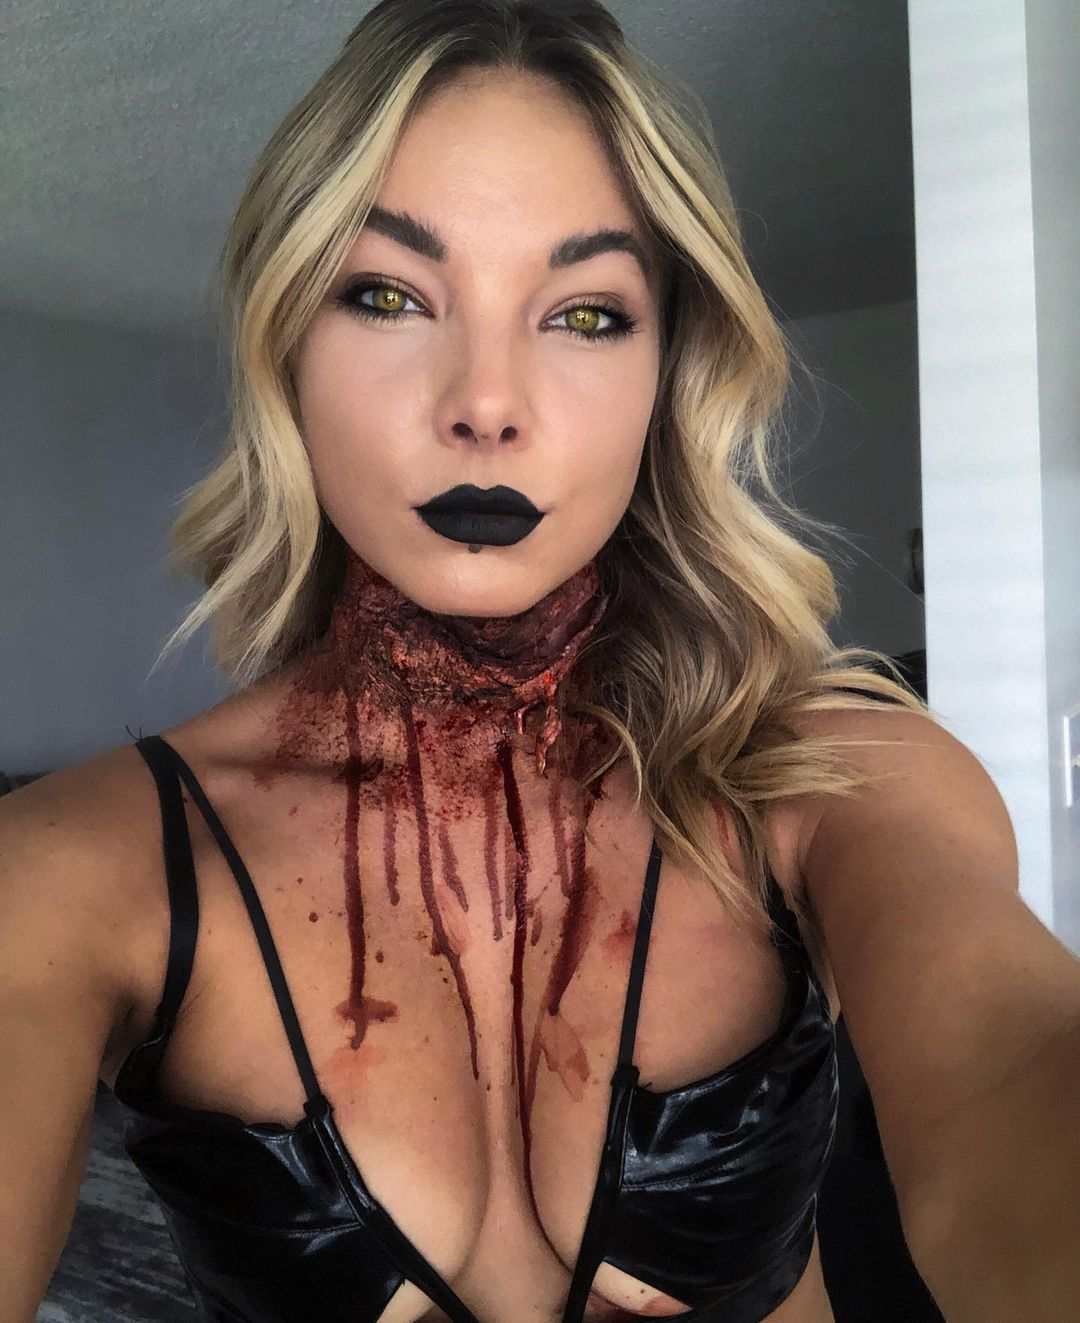 Bloody neck for Scary Halloween Costumes for Women